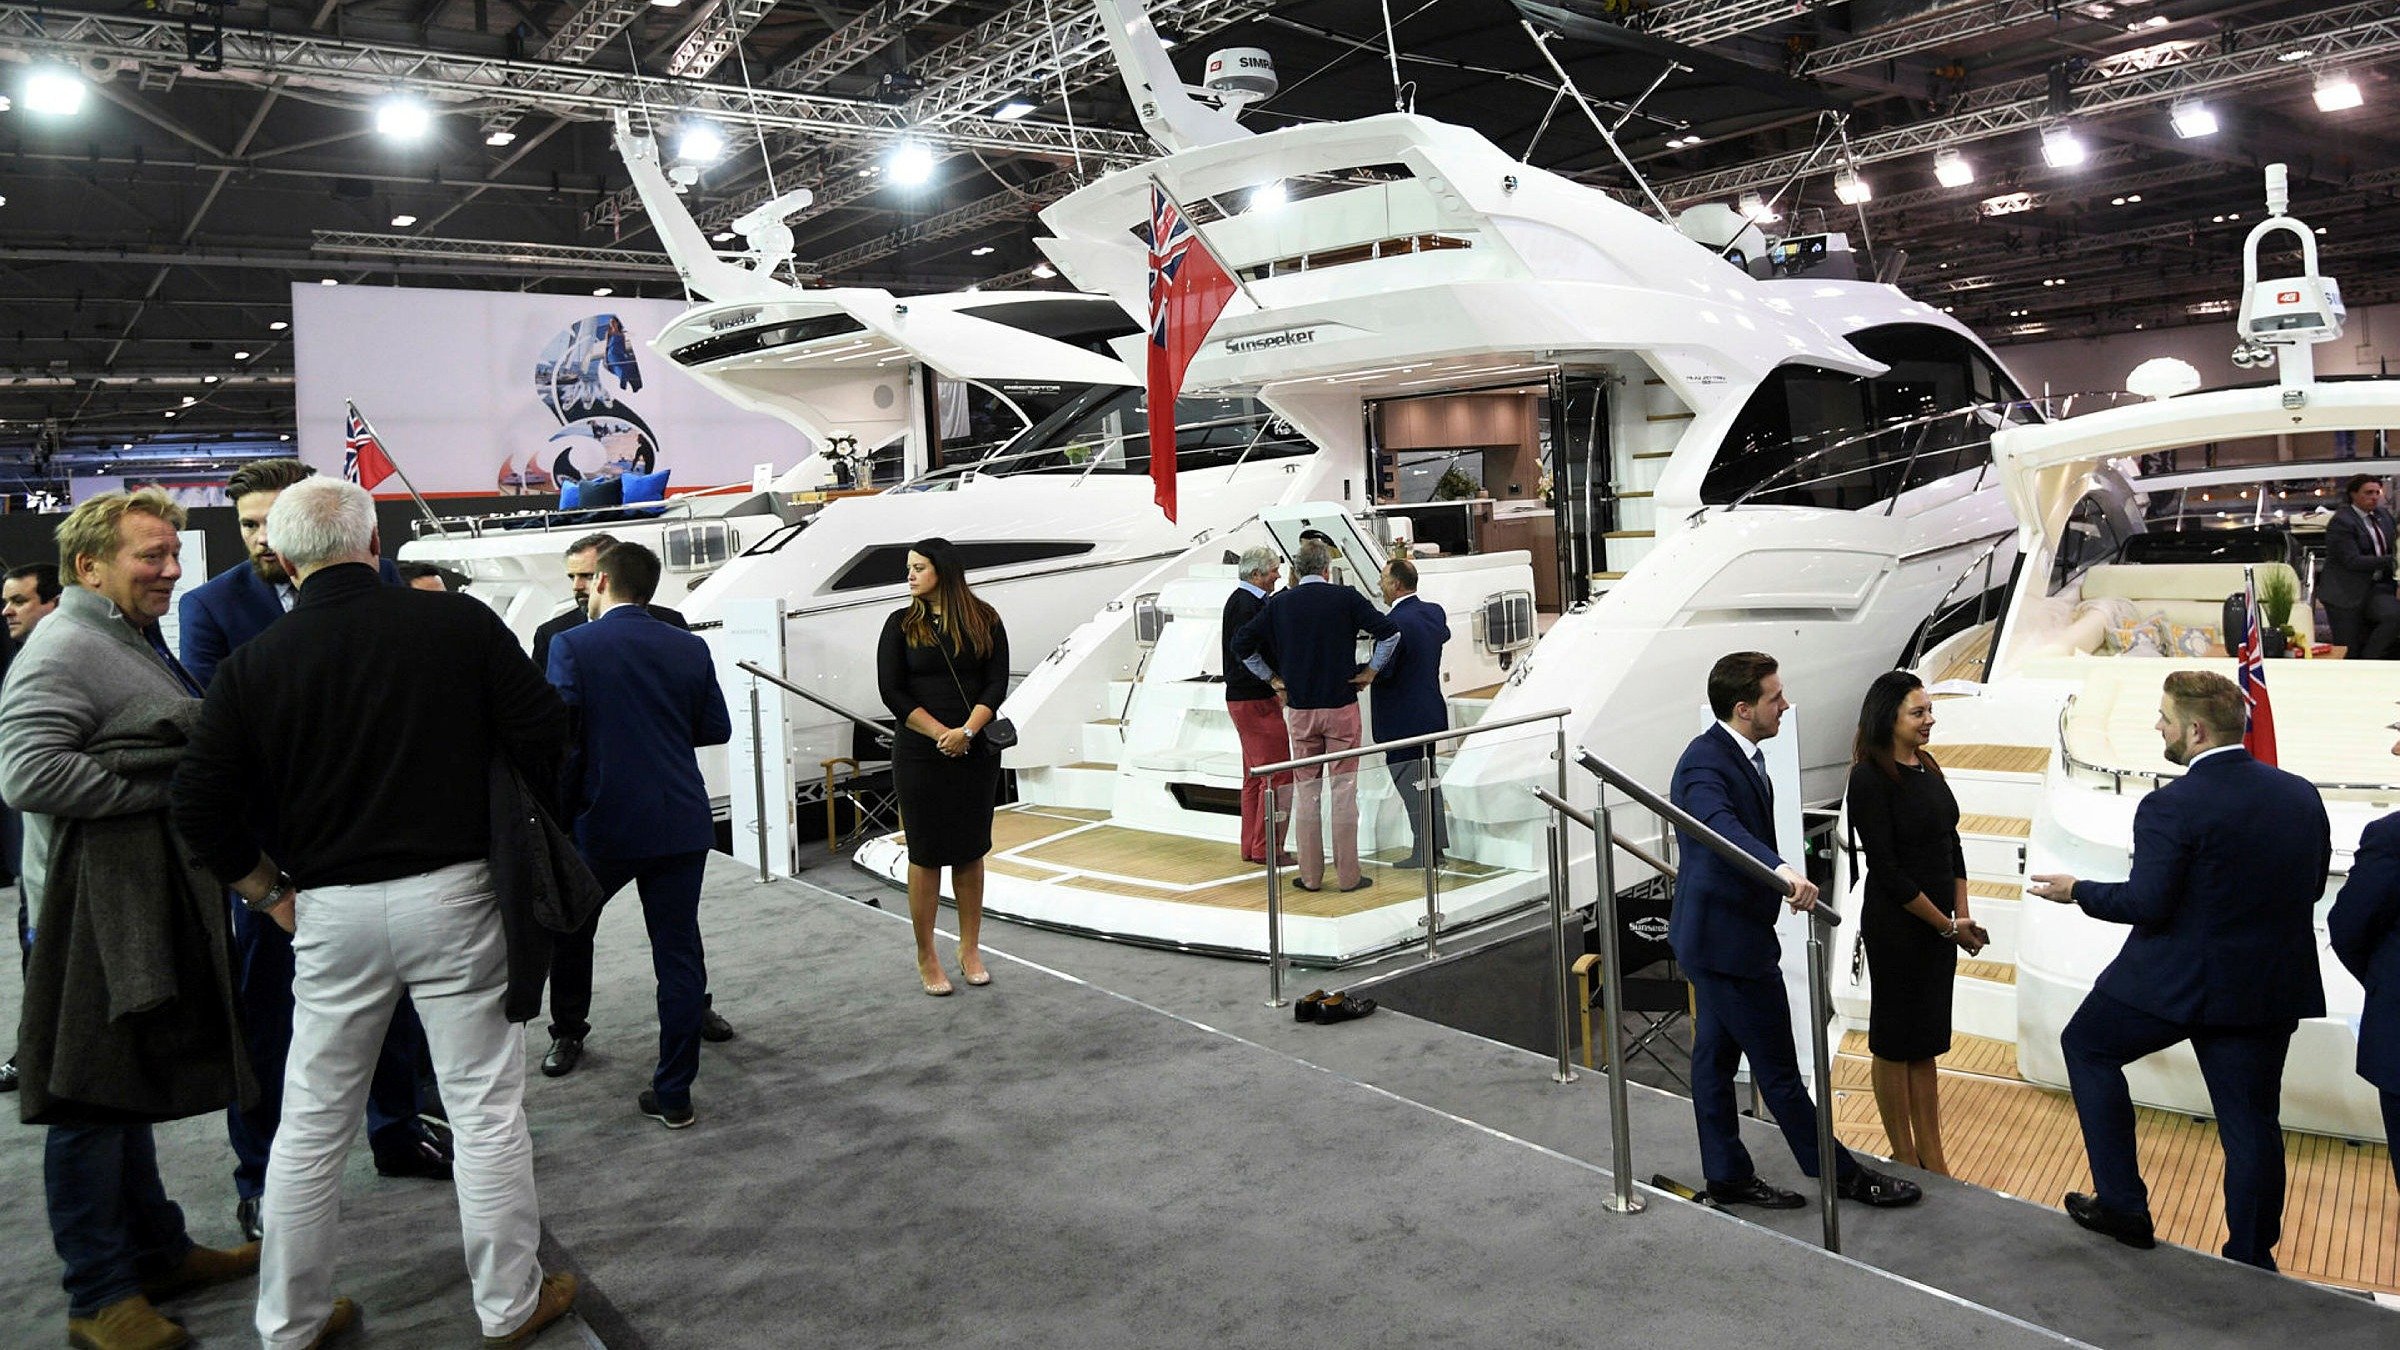 Trade show industry awaits world where people can mingle again   Financial  Times